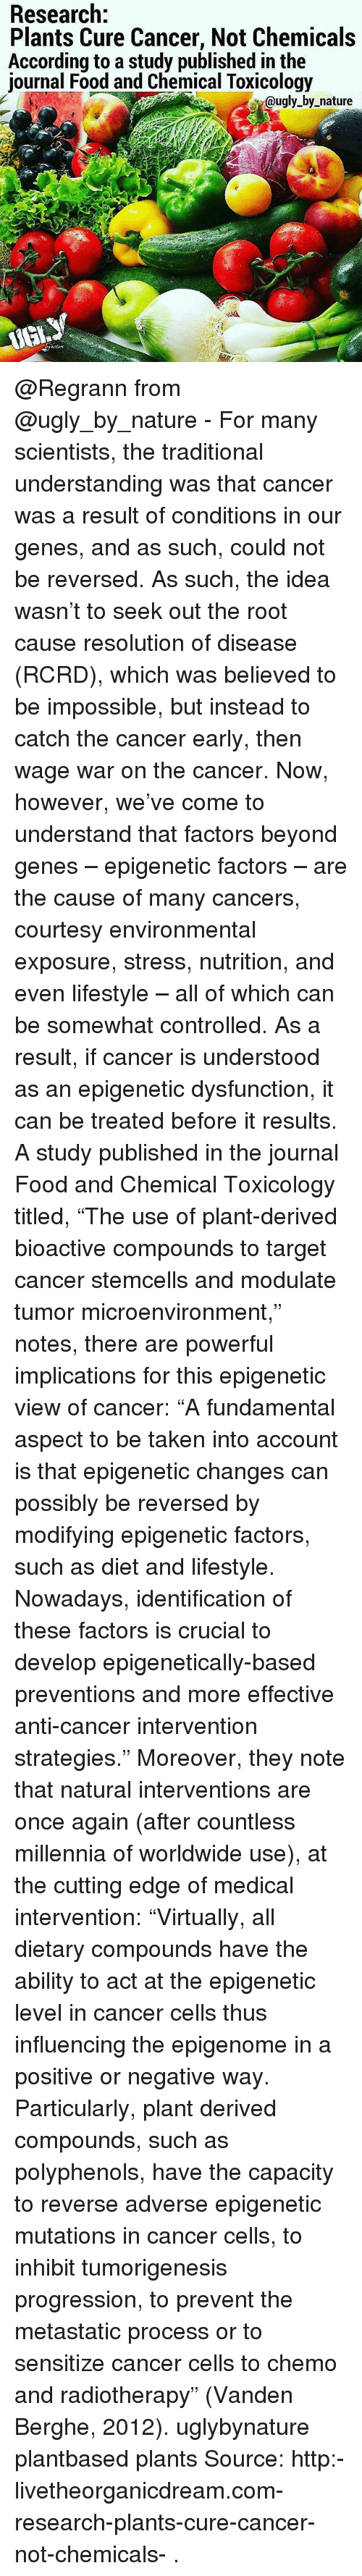 Research Plants Cure Cancer Not Chemicals According to a ...